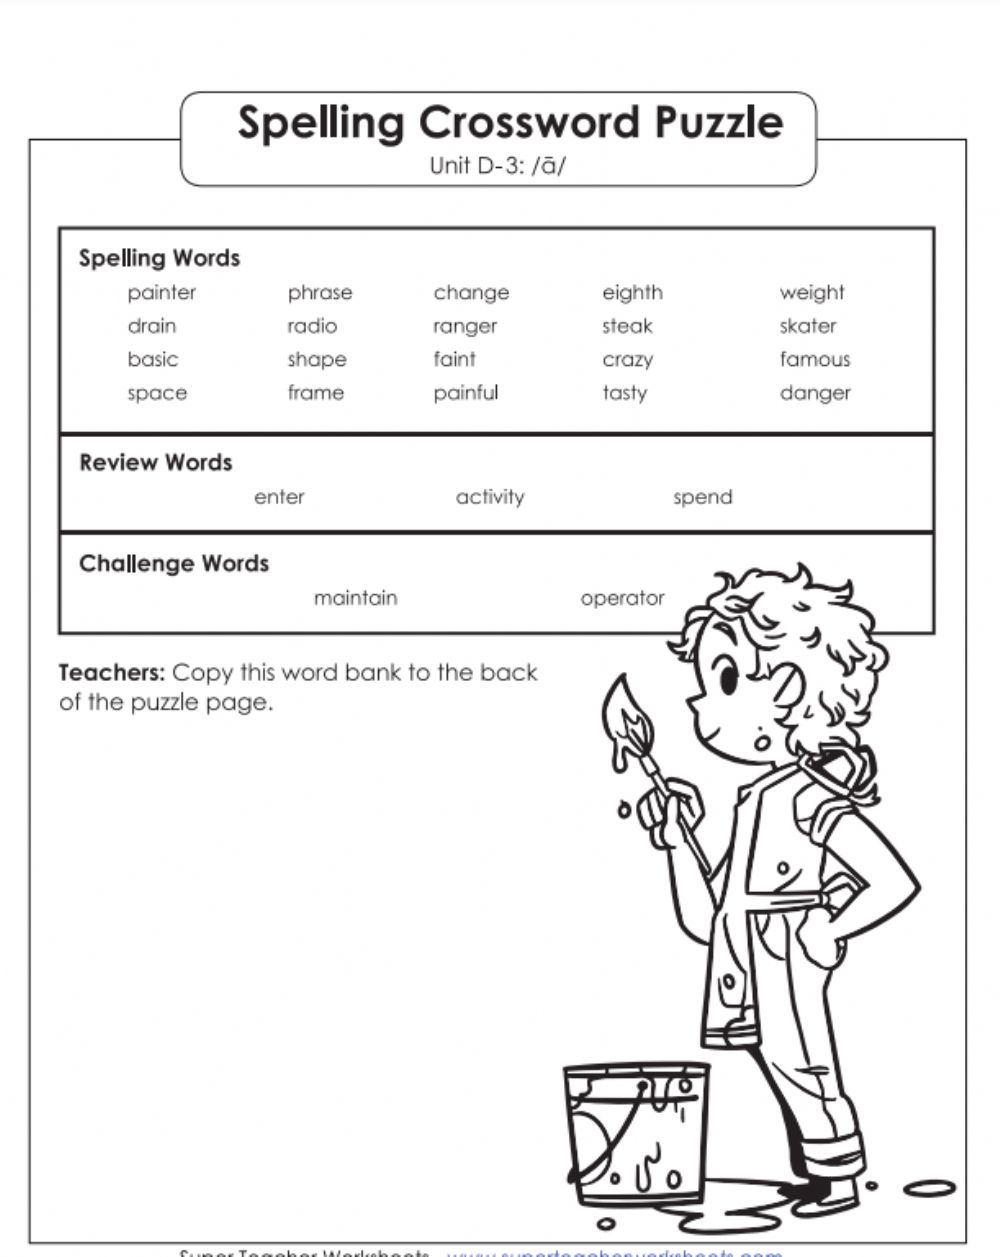 hight resolution of Crossword puzzle 2 D-3 5th grade worksheet